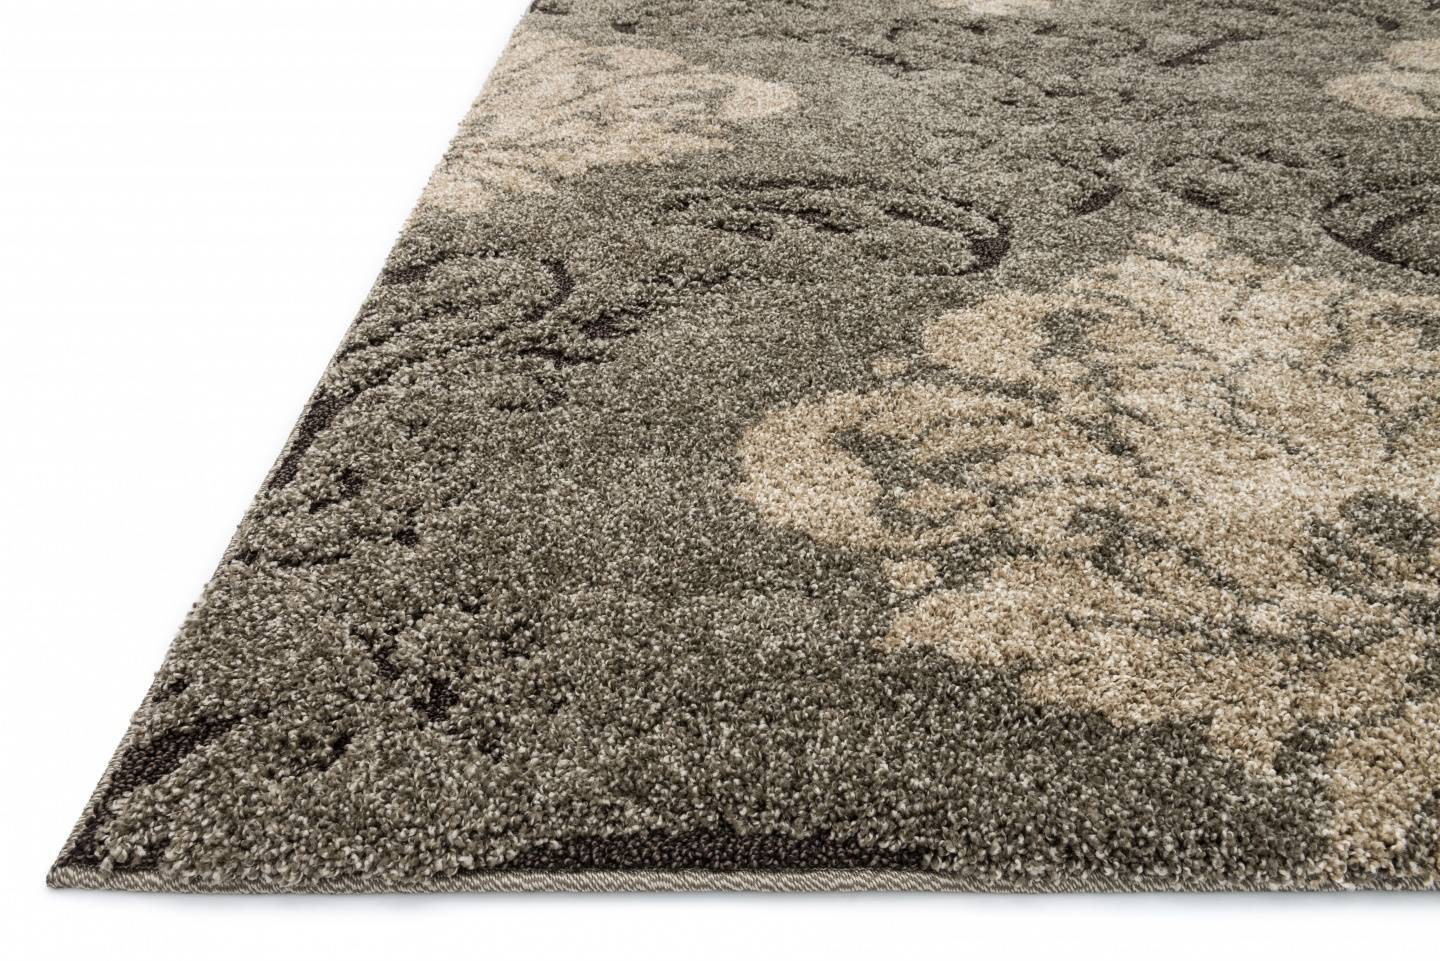 Cut Pile Scale Large Rugs That Will Encomp Entire Seating Areas Such As Your Dining Room Table And Chairs Or Living By Measuring From